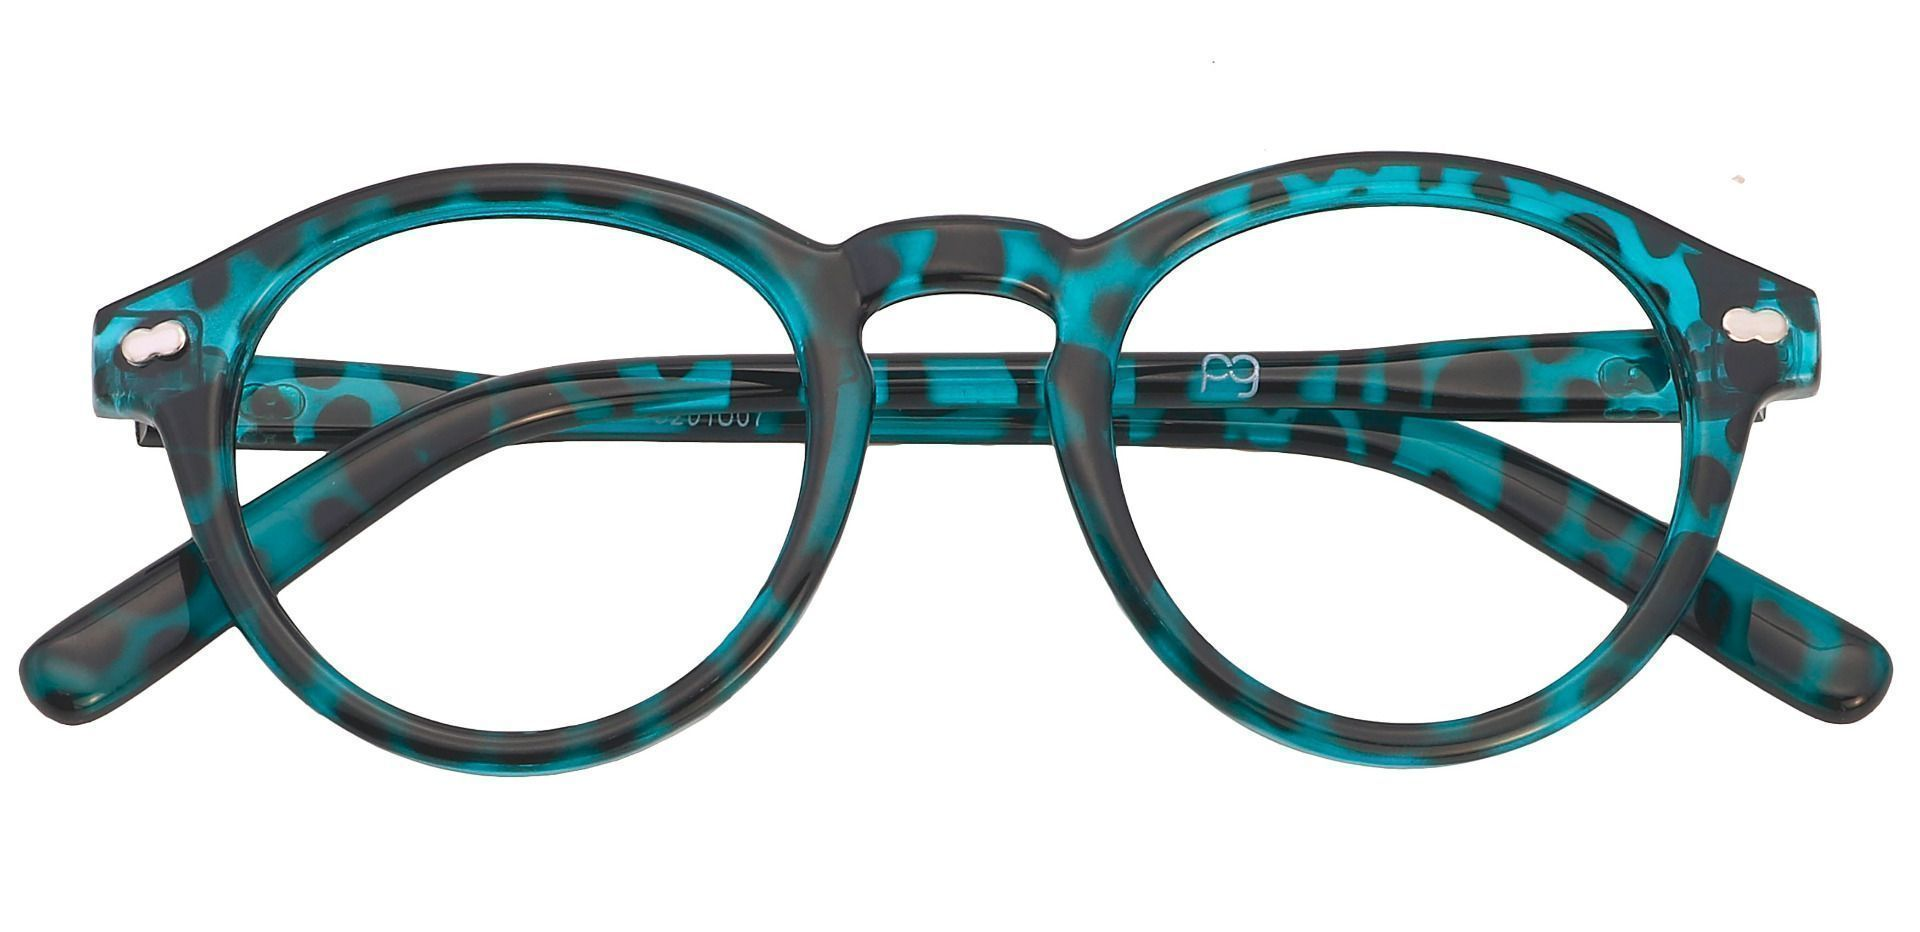 Vee Round Blue Light Blocking Glasses - Turquoise Havana